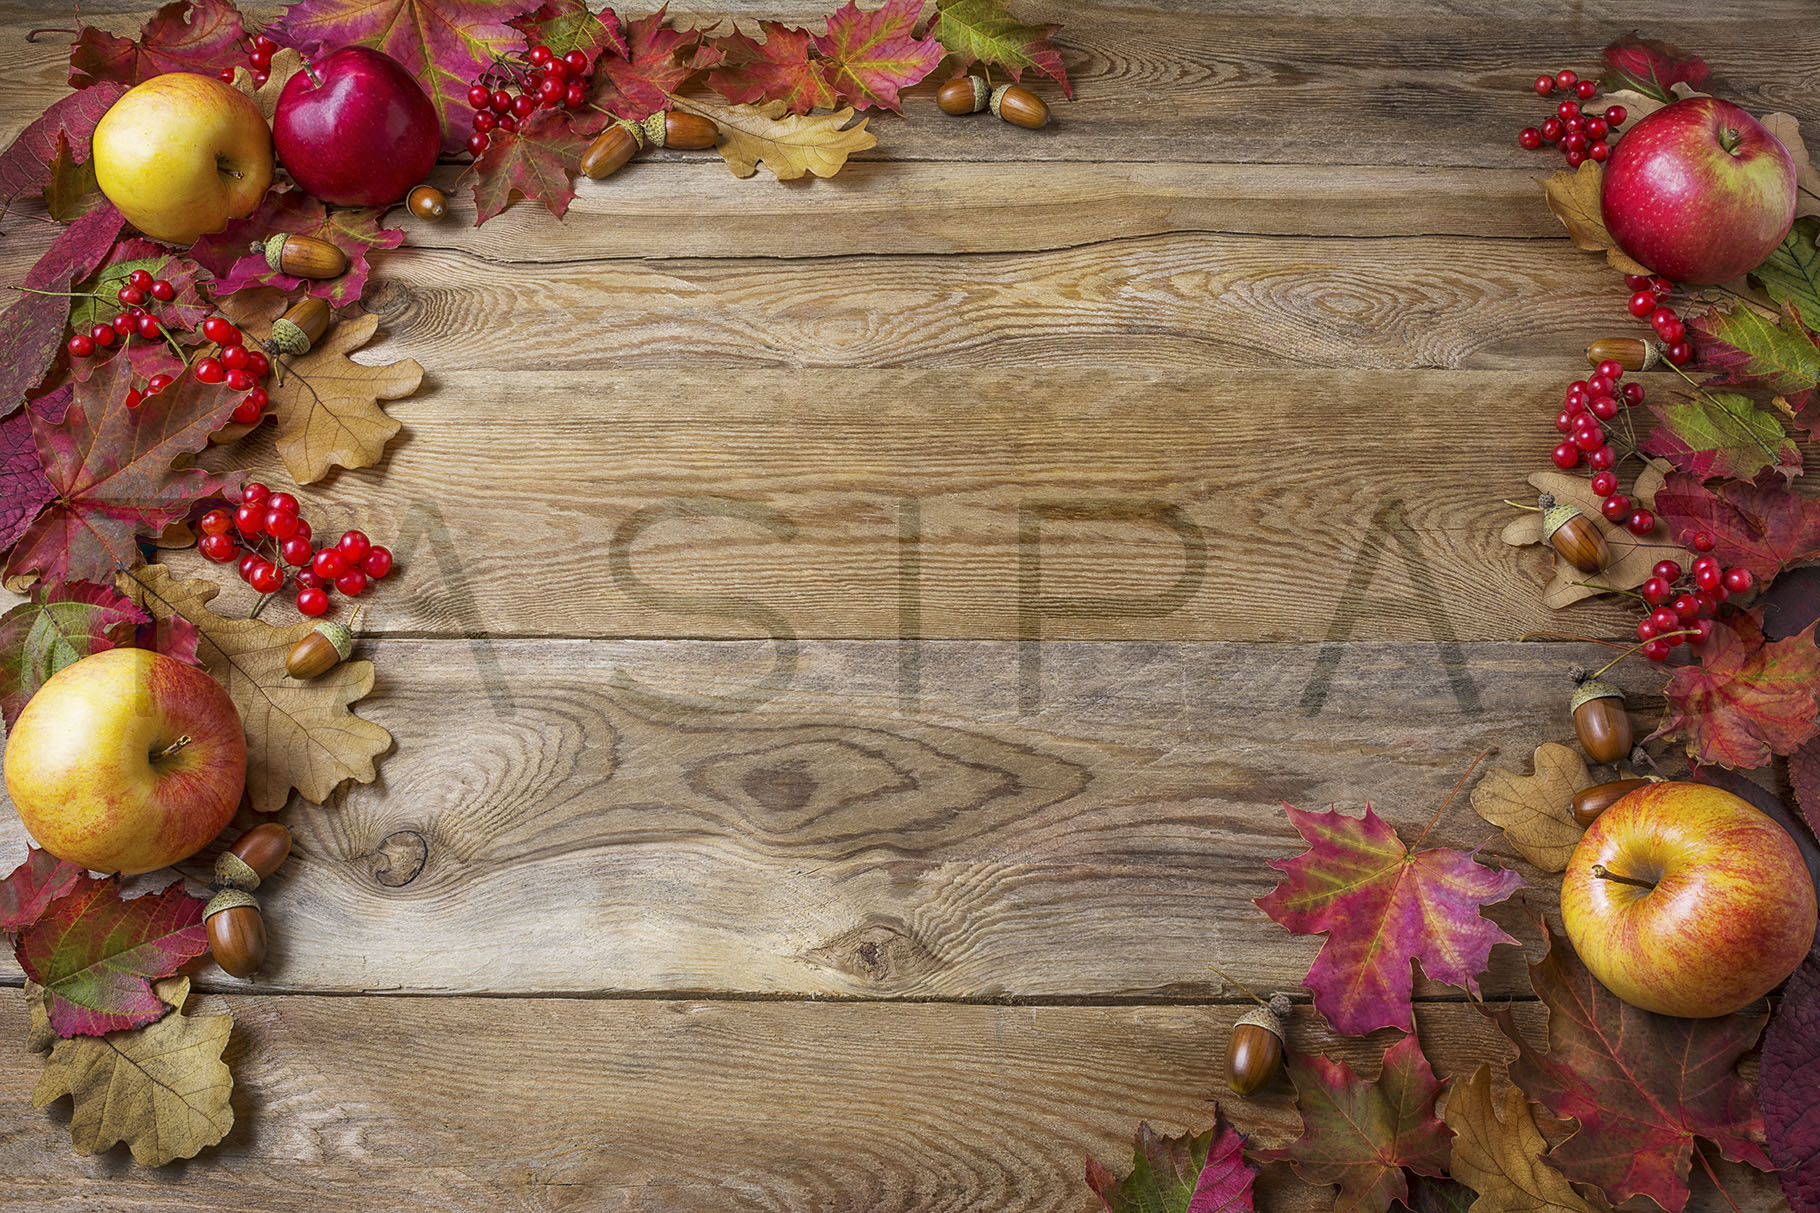 Download Free Frame Of Apples Acorns Berries And Fall Leaves On Dark Wooden for Cricut Explore, Silhouette and other cutting machines.